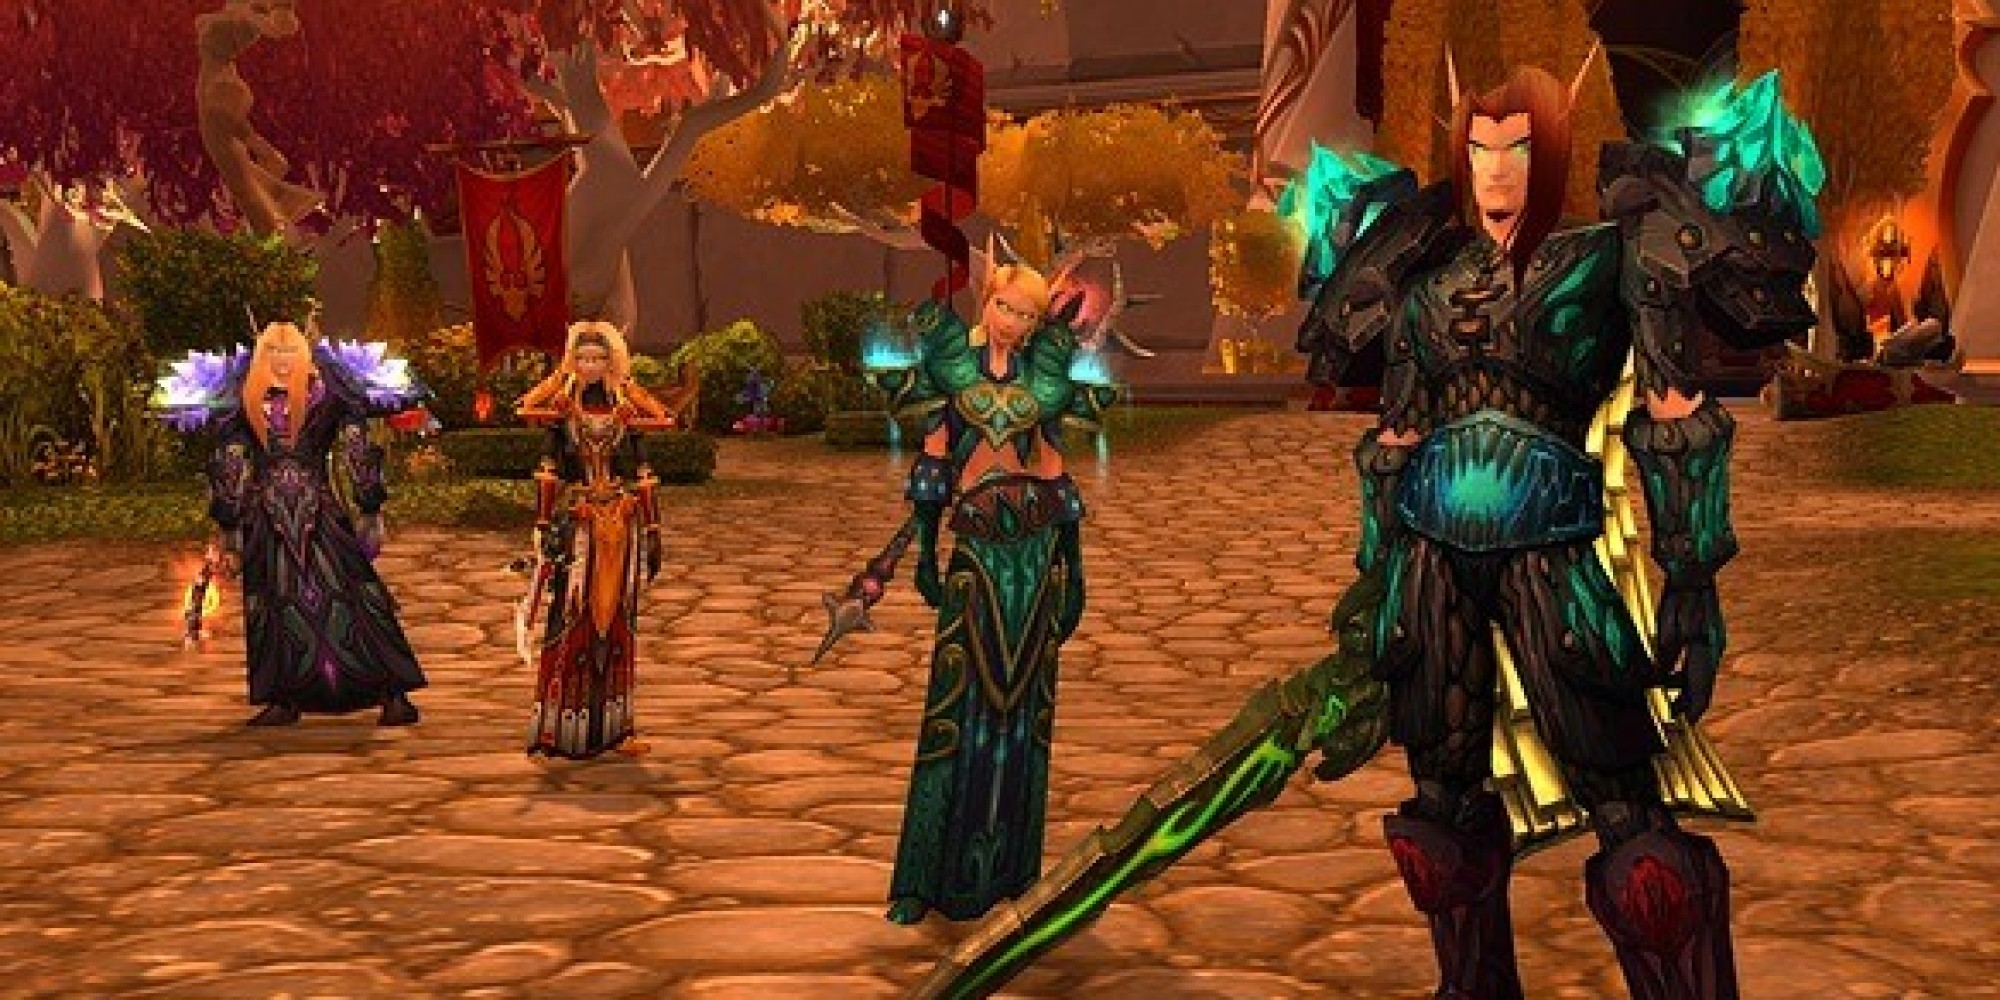 Doctor claims 40 percent of World of Warcraft players are addicted